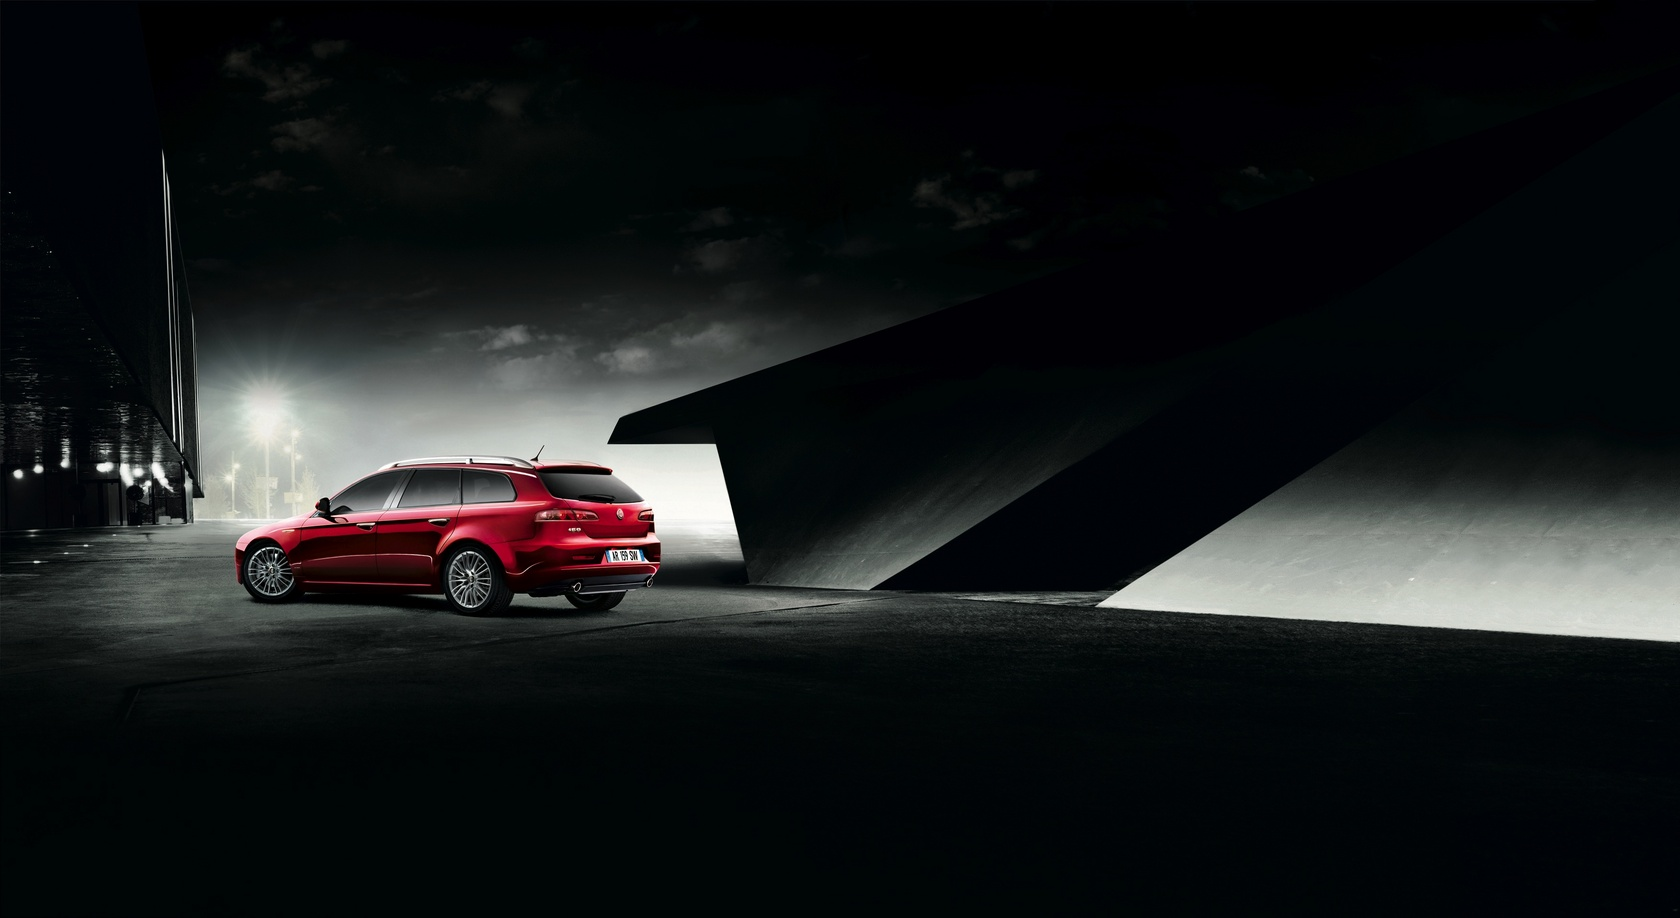 Ford Performance Parts >> Alfa Romeo 159 Sportwagon Auto Wallpapers GroenLicht.be